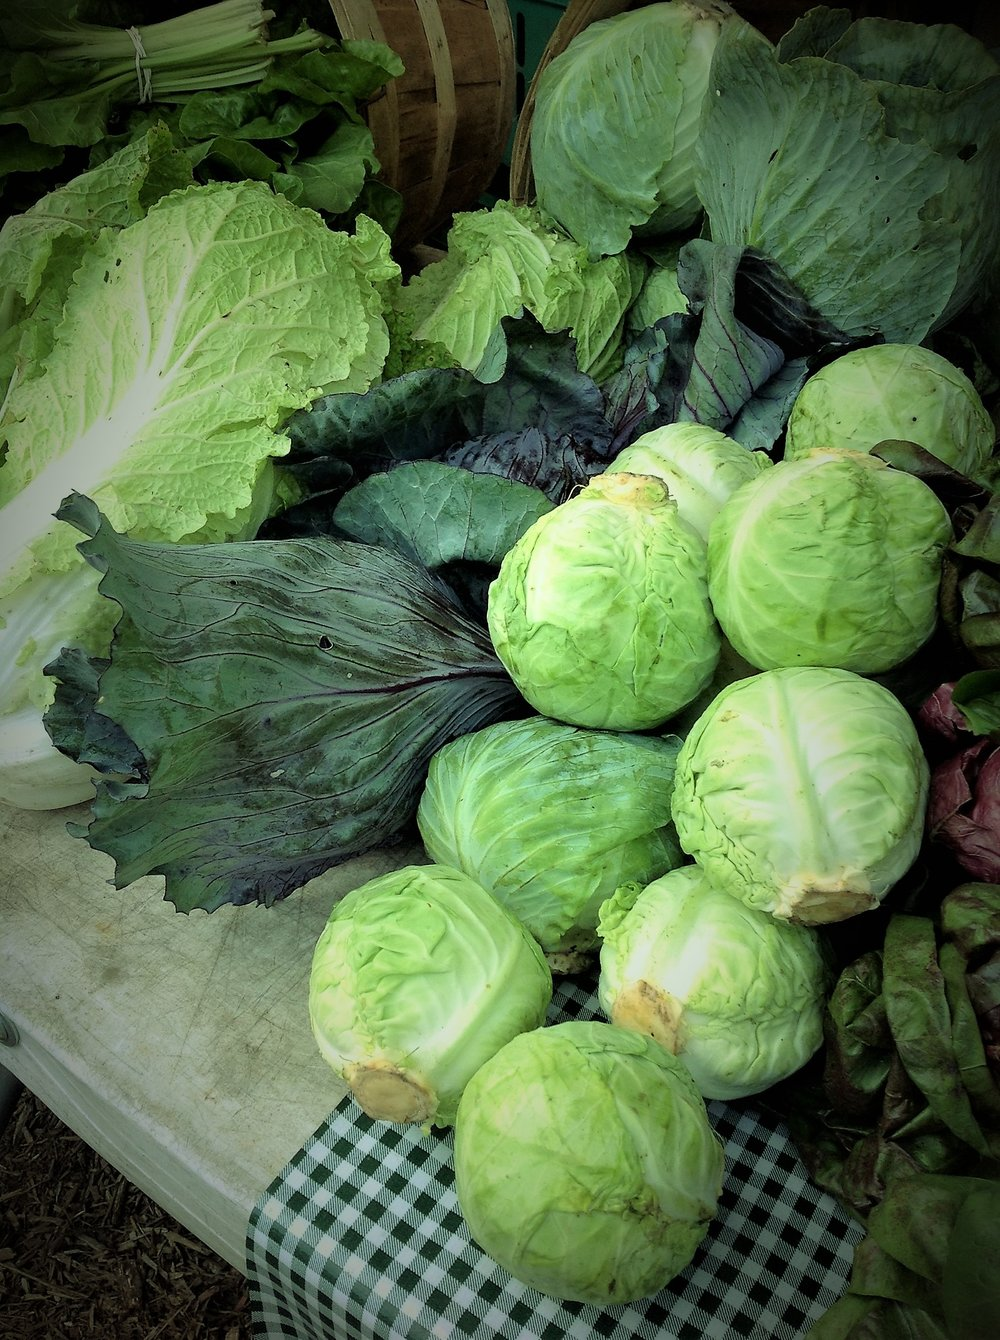 Cabbage - How to Pick, Store, and CookChoosing Organic, Eating Local, In-SeasonHealthy, Plant-Based, Oil-Free Vegan Recipes